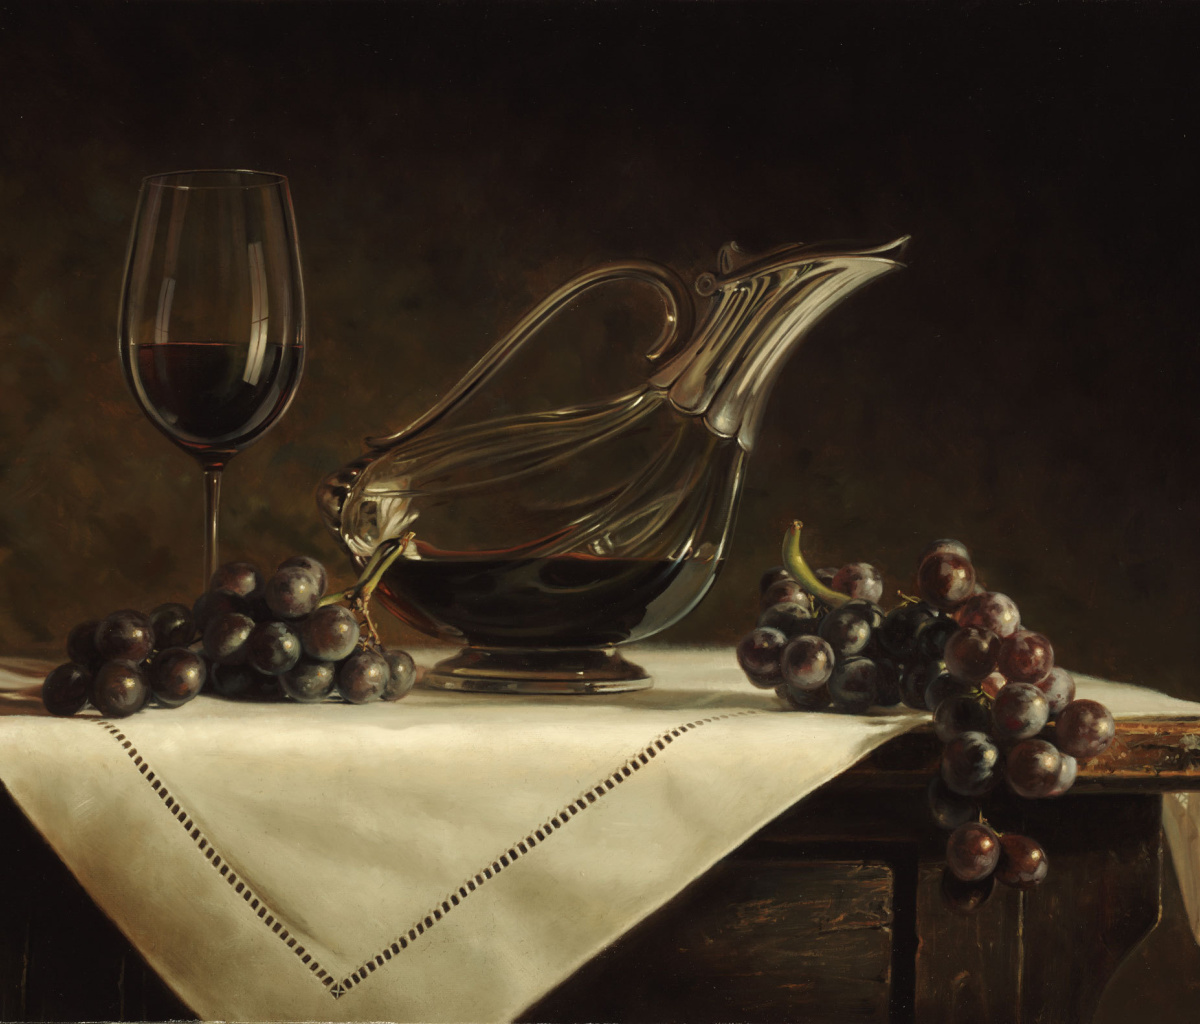 Still life grapes and wine screenshot #1 1200x1024